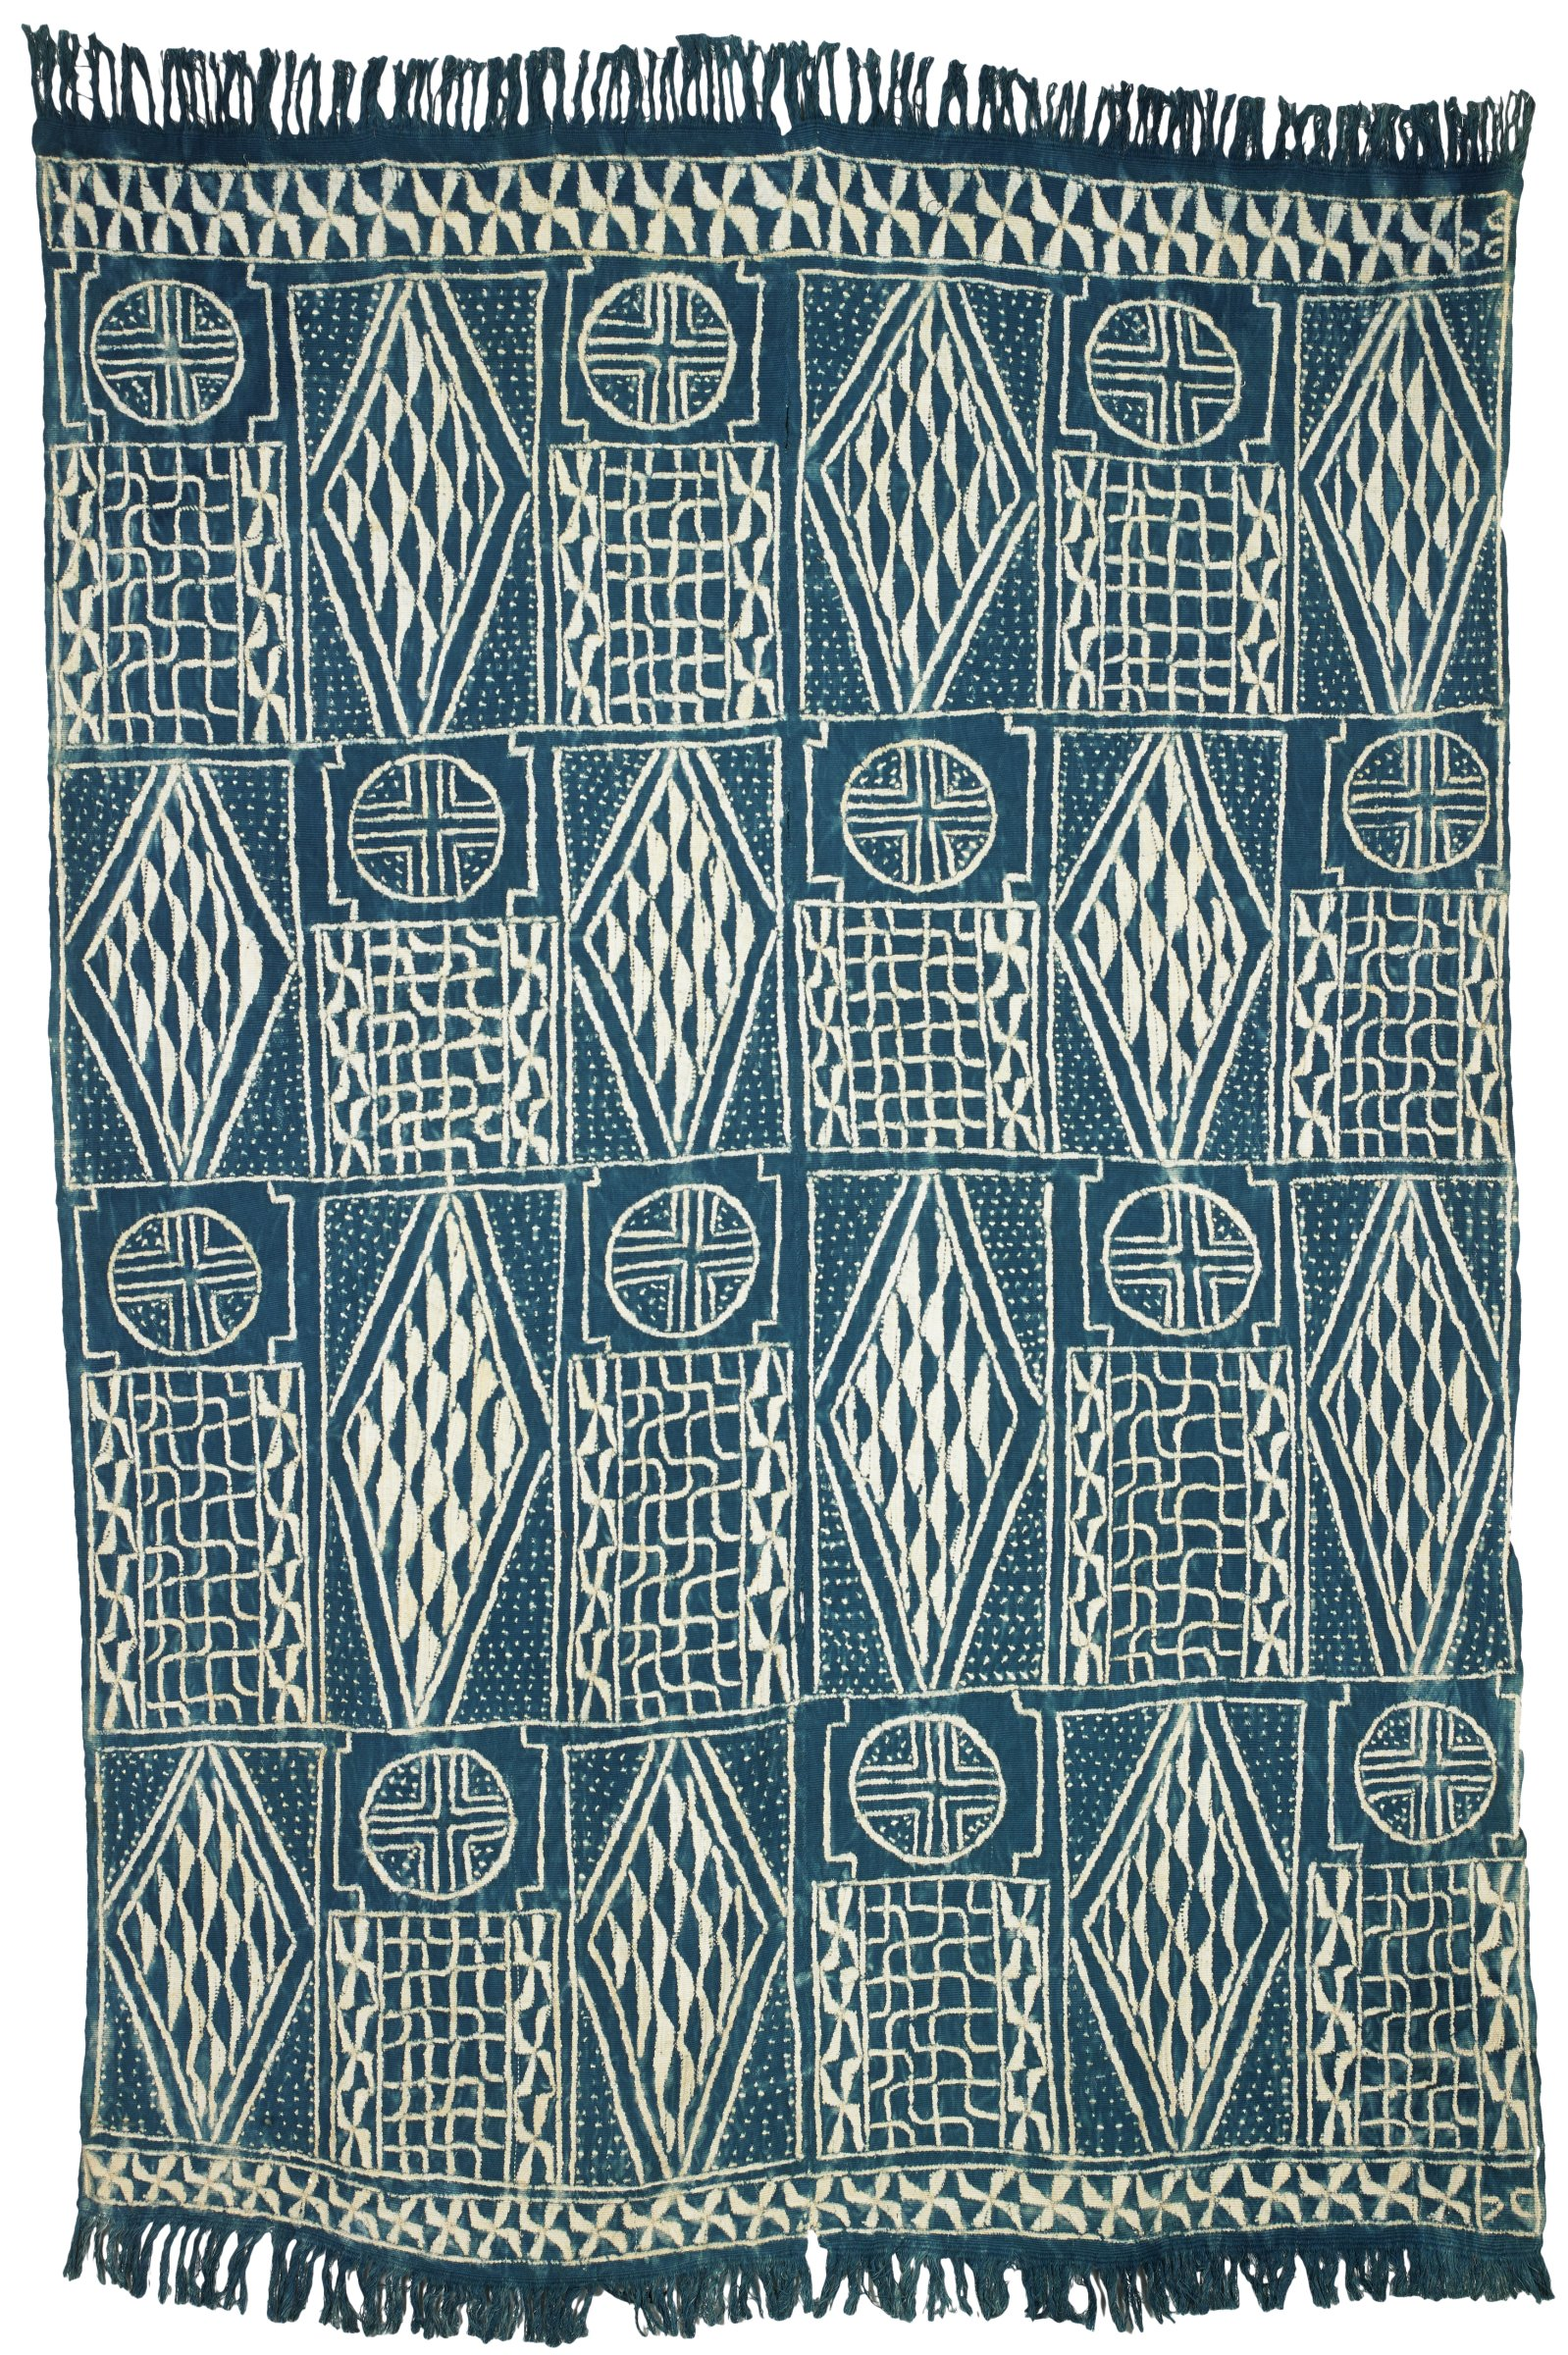 Prestige Cloth, Bamum people, Republic of Cameroon, African, cotton and indigo dye